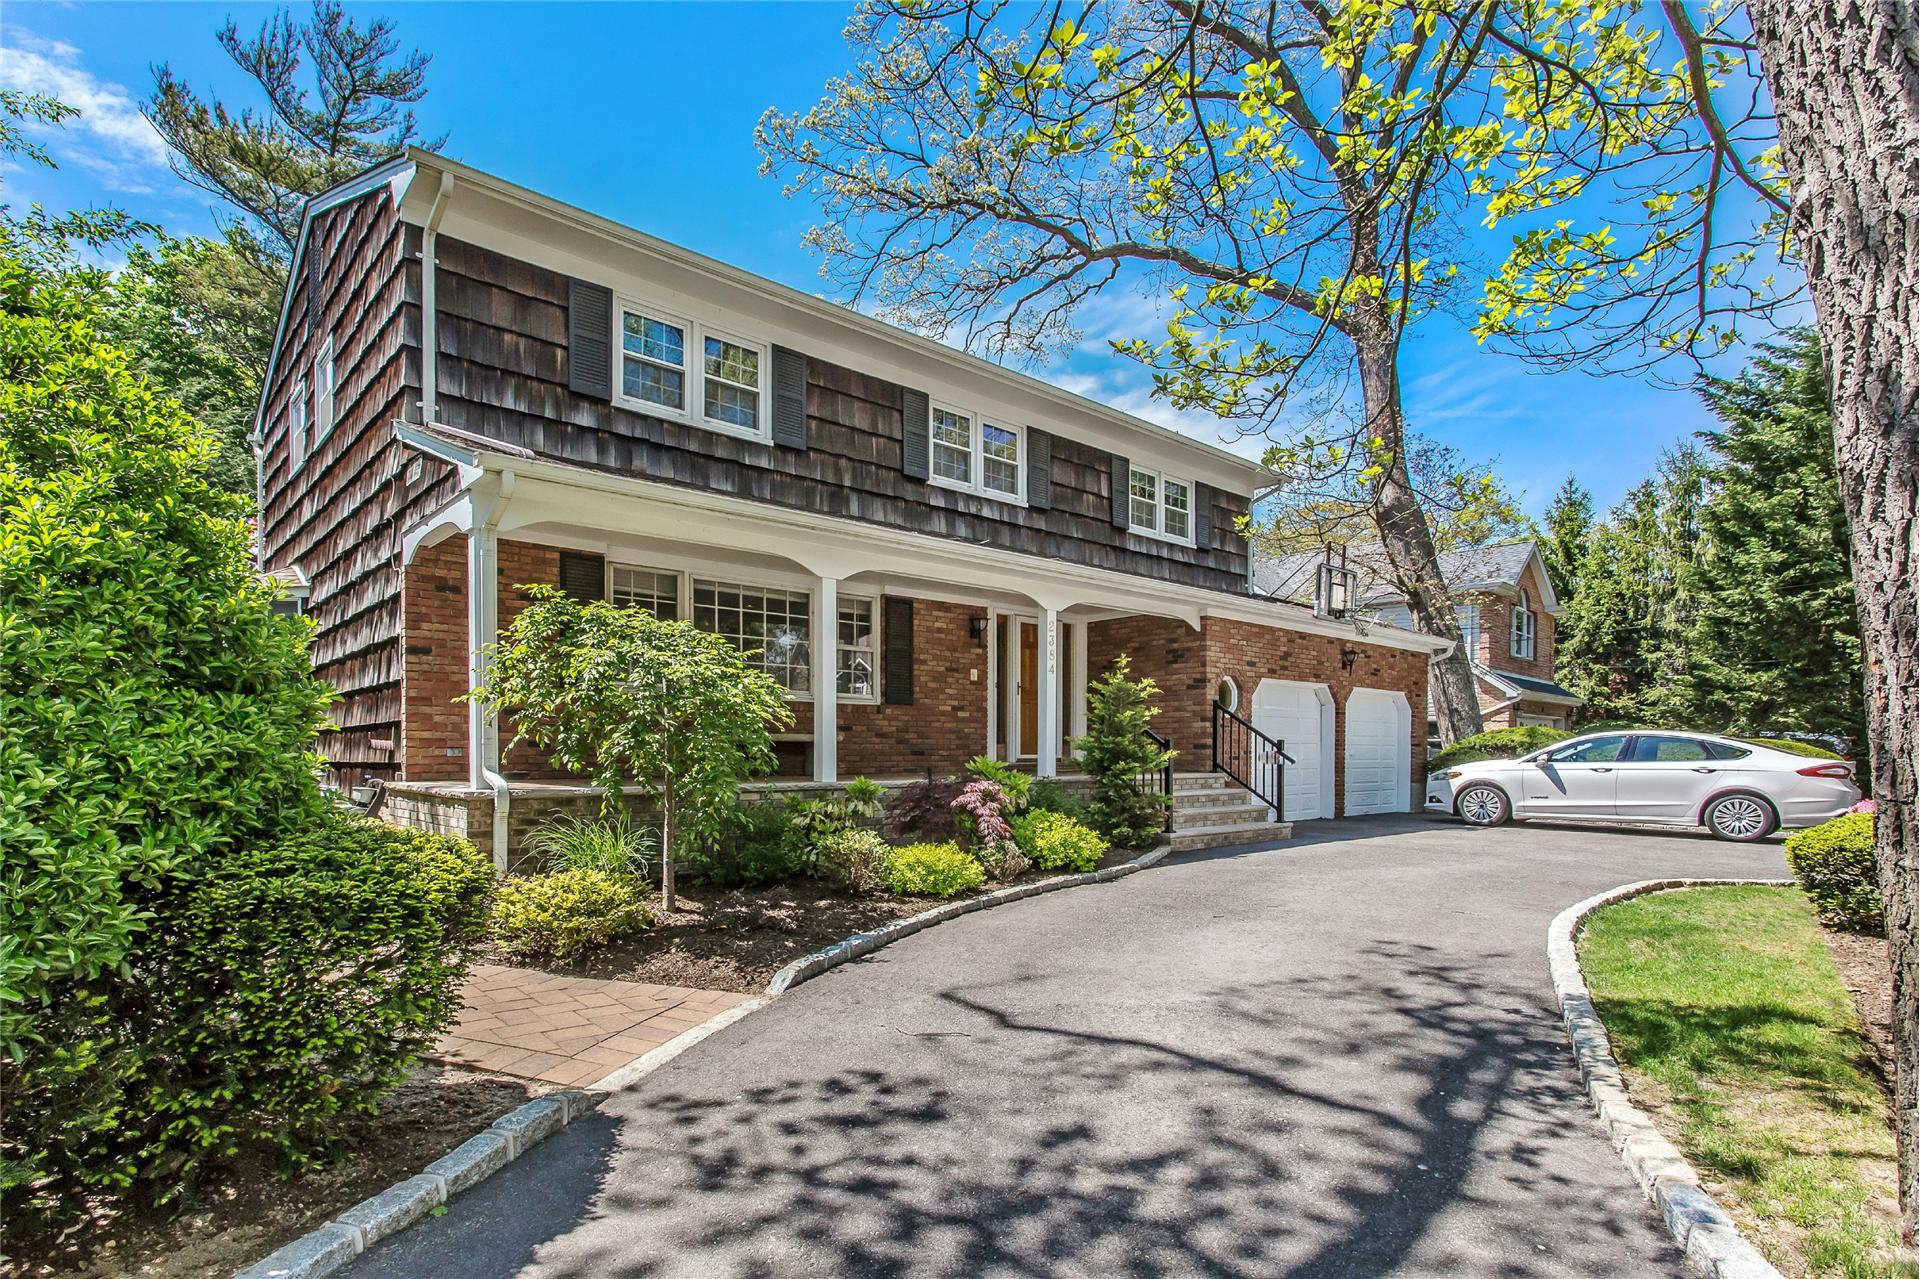 2384 Lindenmere Dr - Merrick, New York